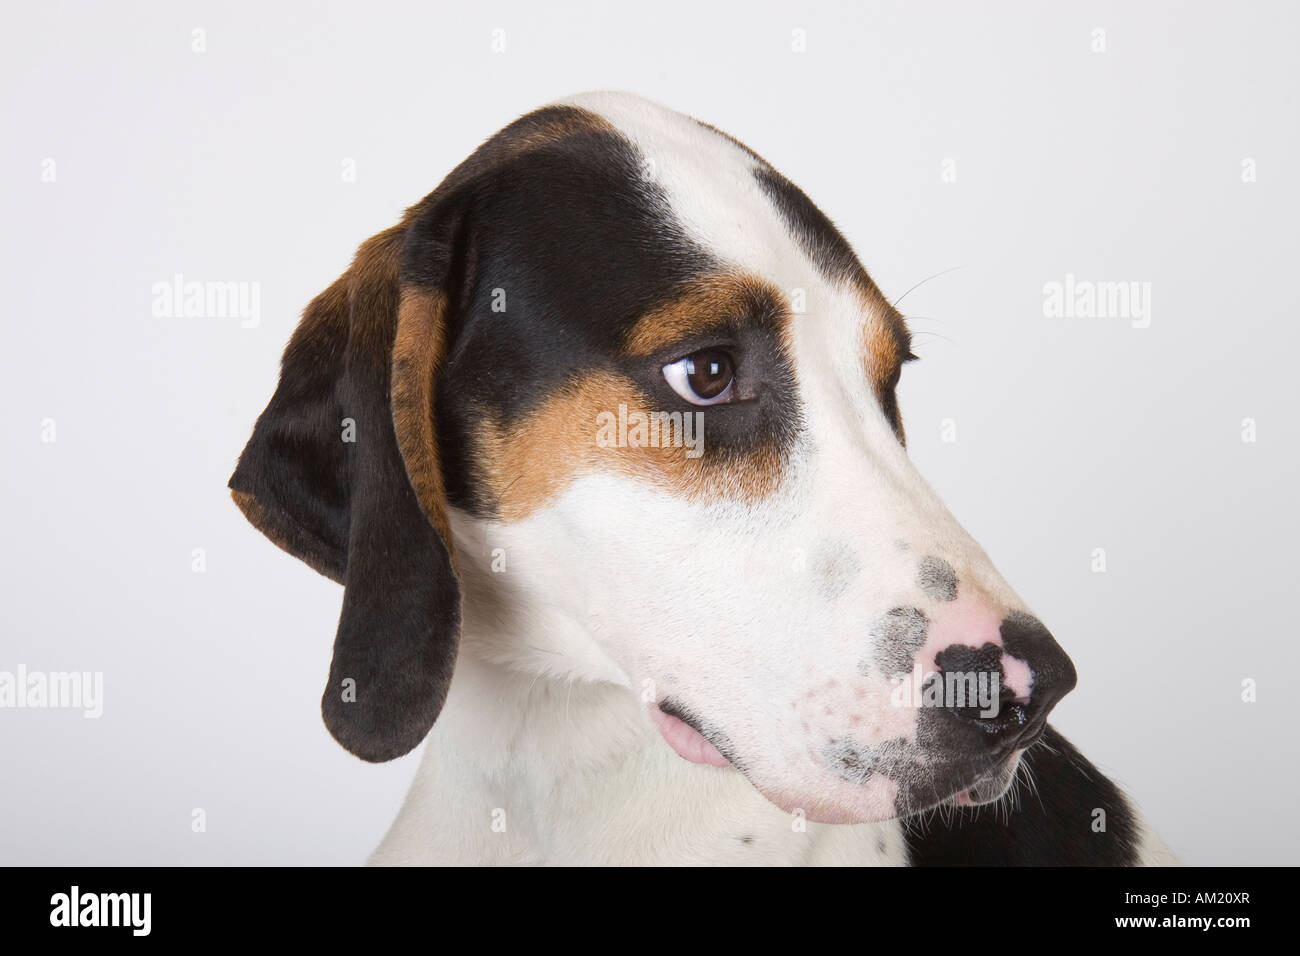 Coonhound Dog Stock Photos & Coonhound Dog Stock Images ...